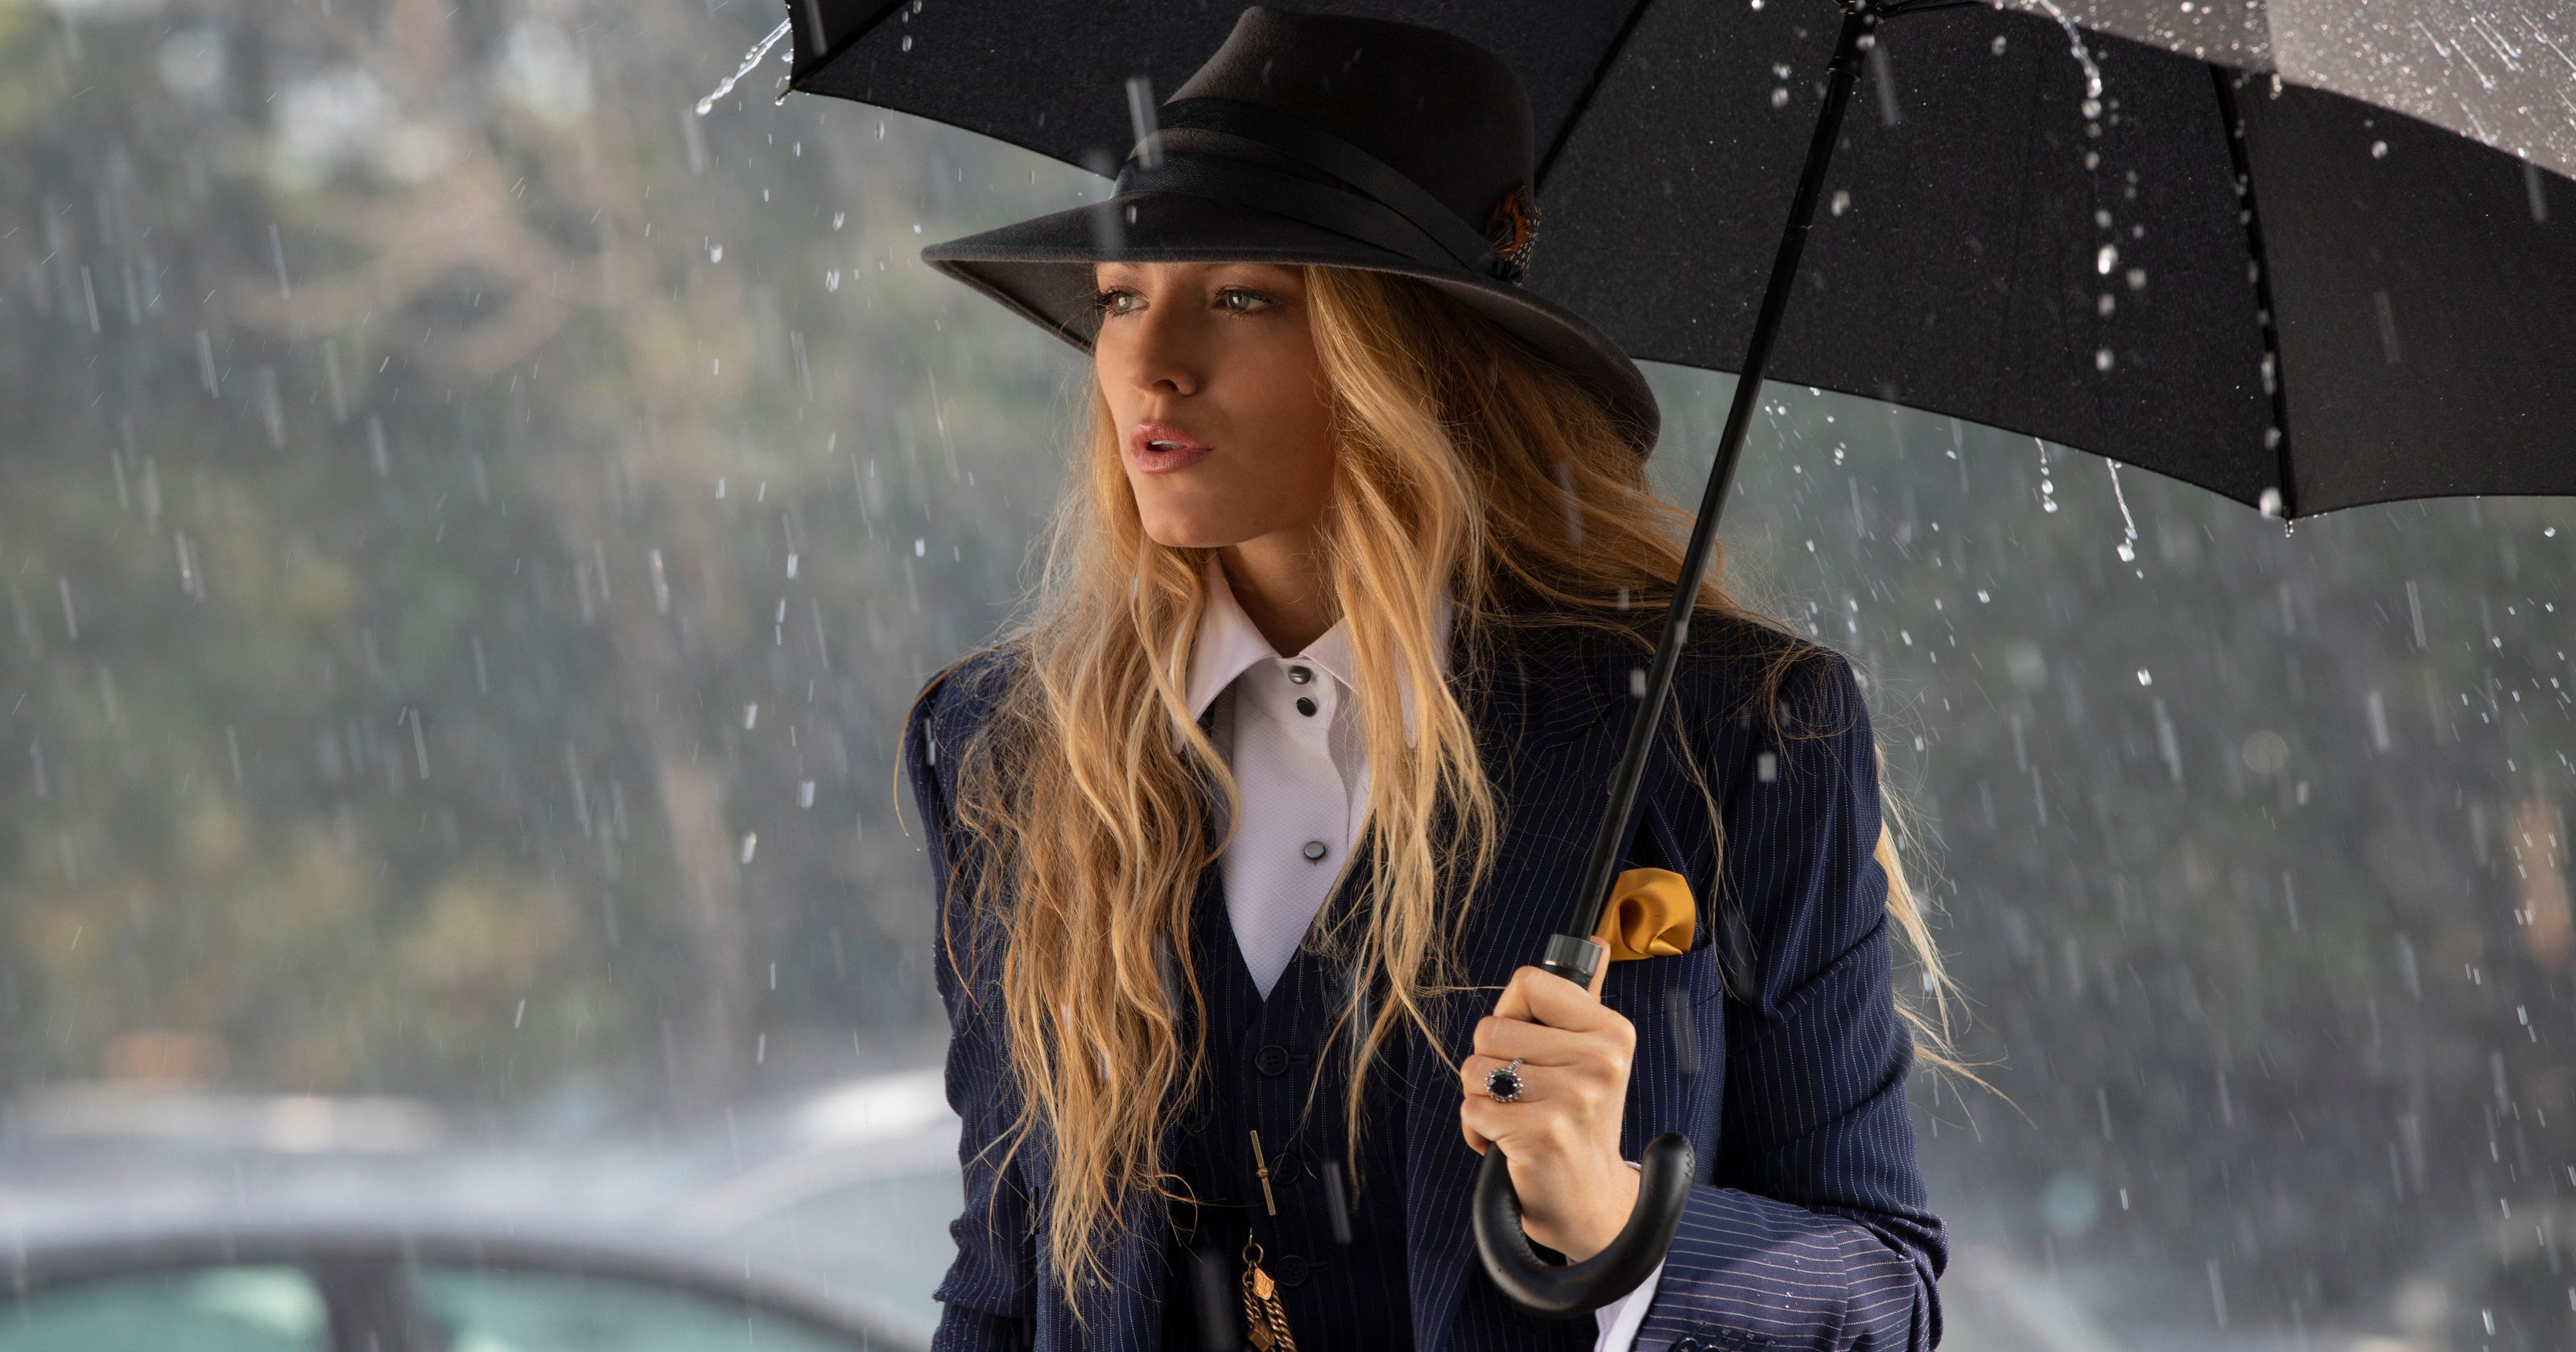 A Simple Favor 7 Reasons To See Glamorous Mystery